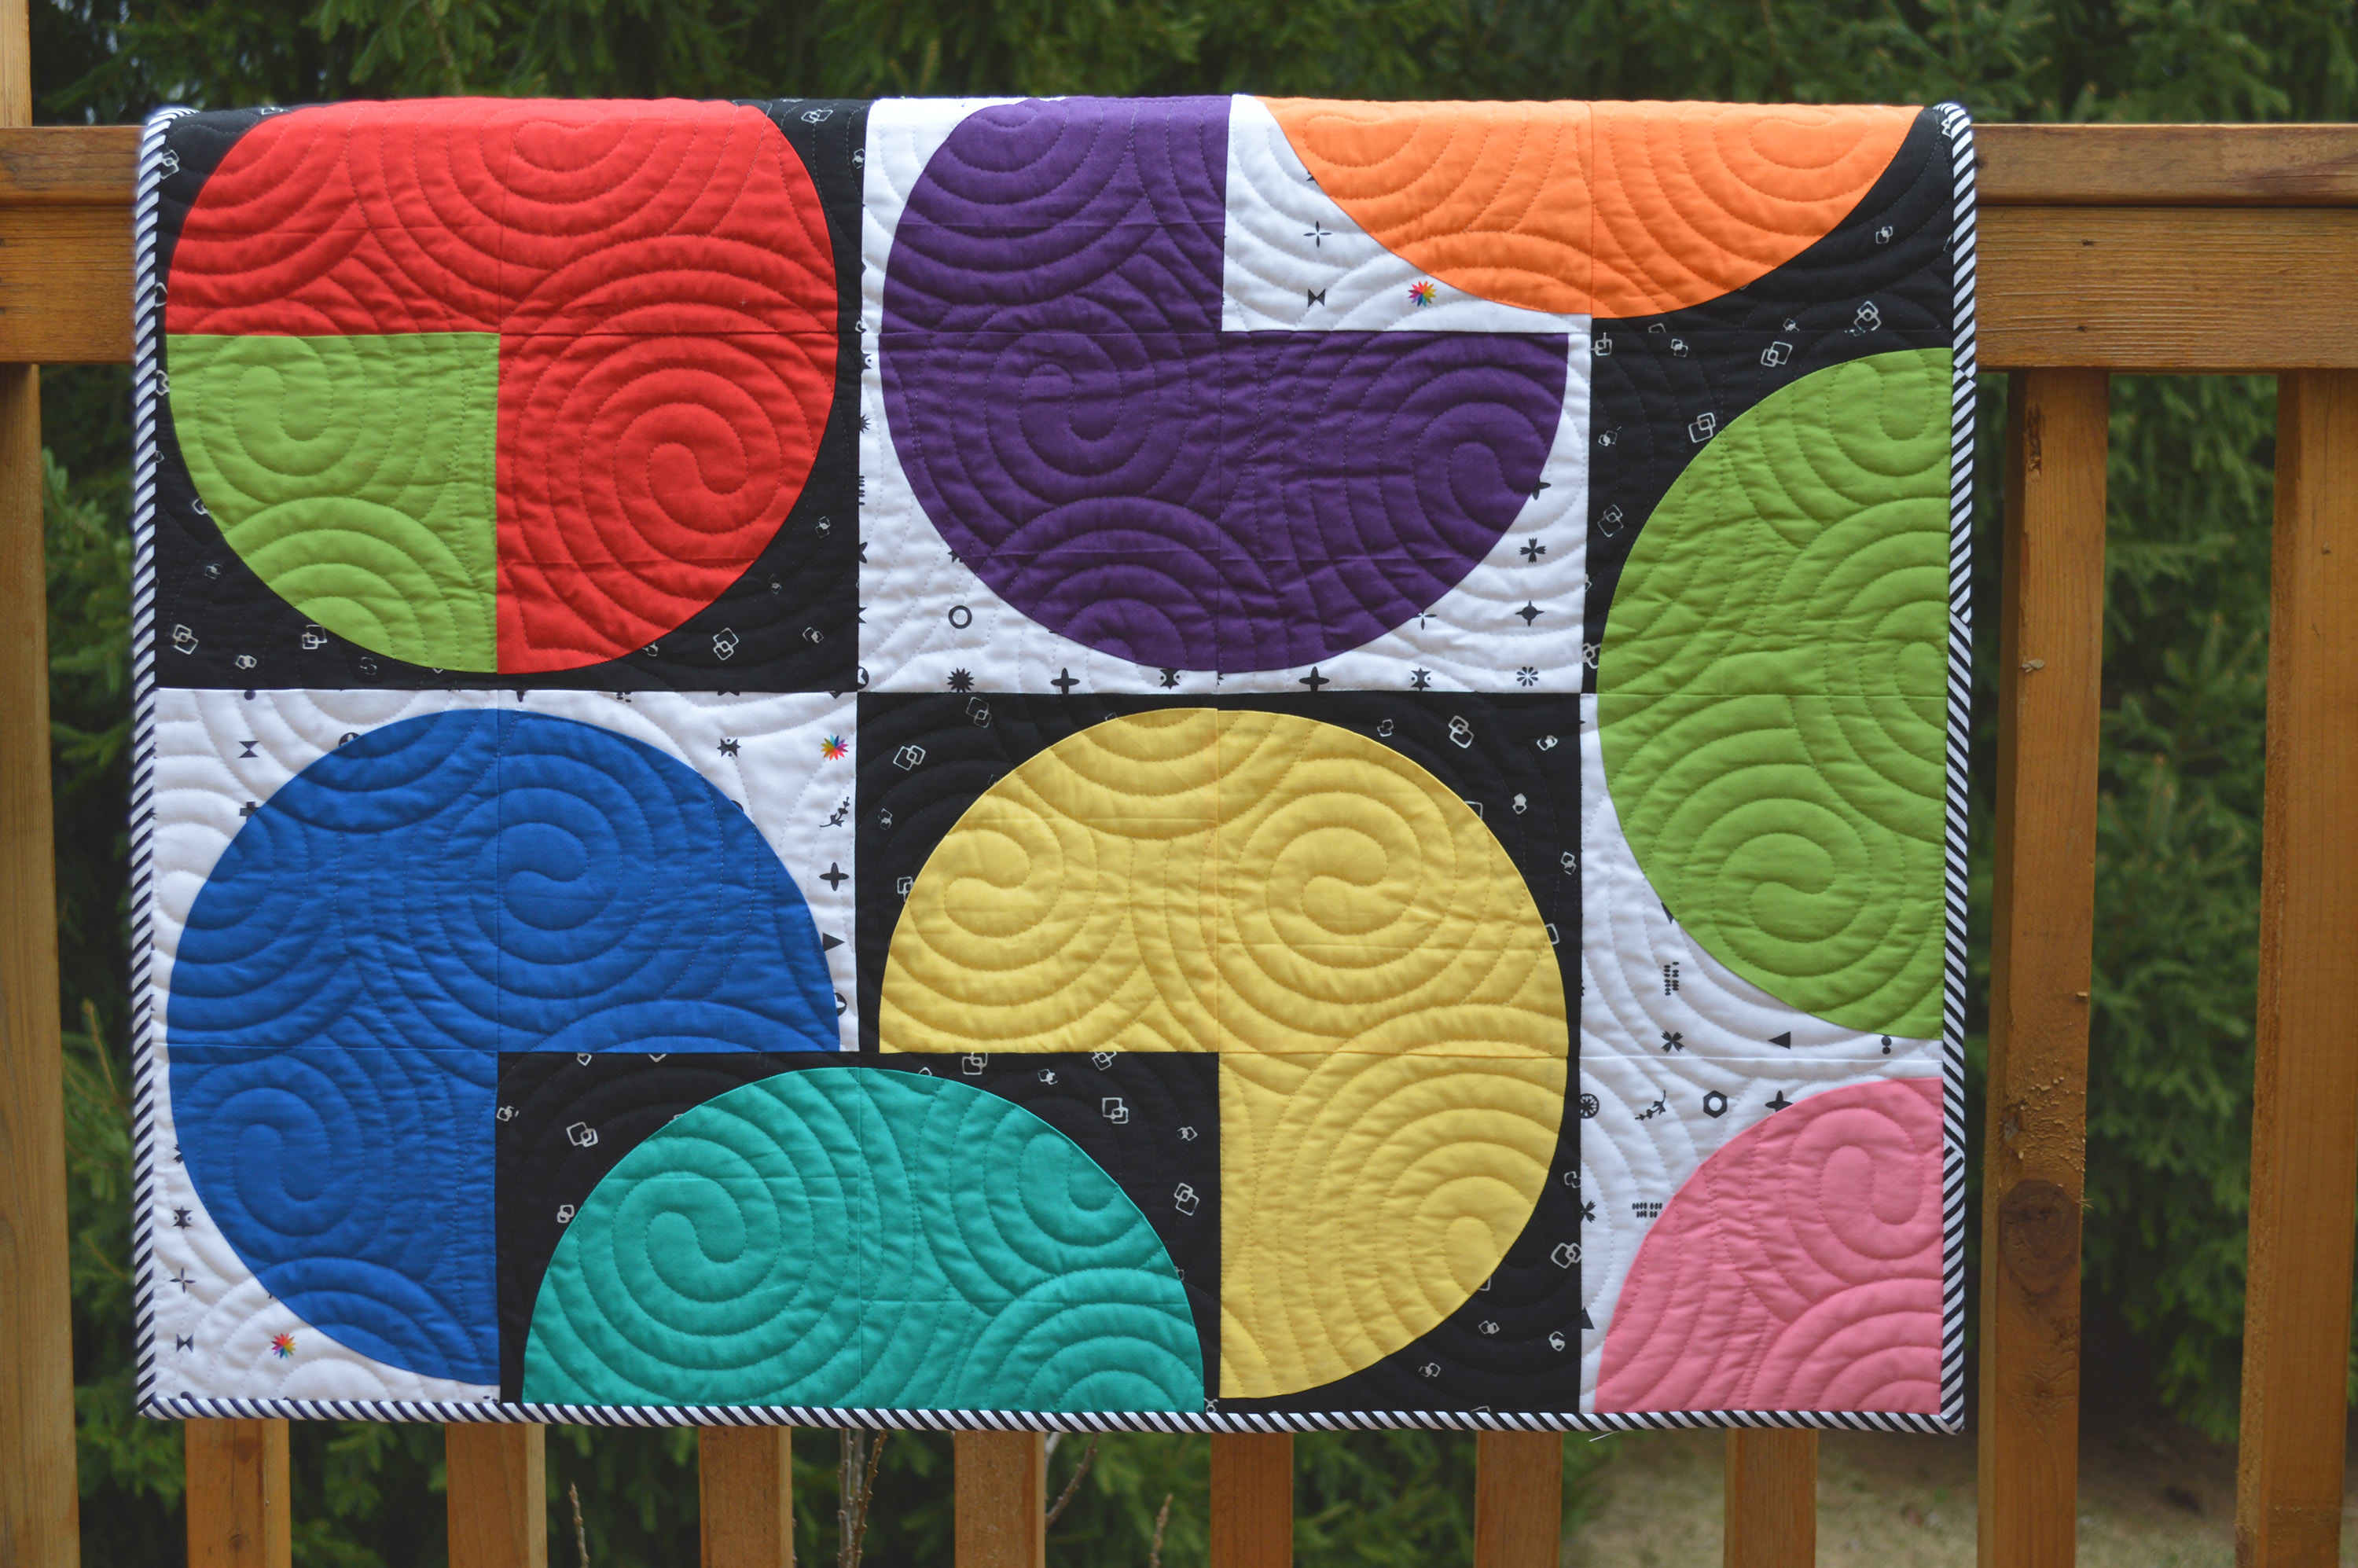 Classic Curve quilt with drunkards path curved piecing quilt with fabric by Hoffman Fabrics indah batiks